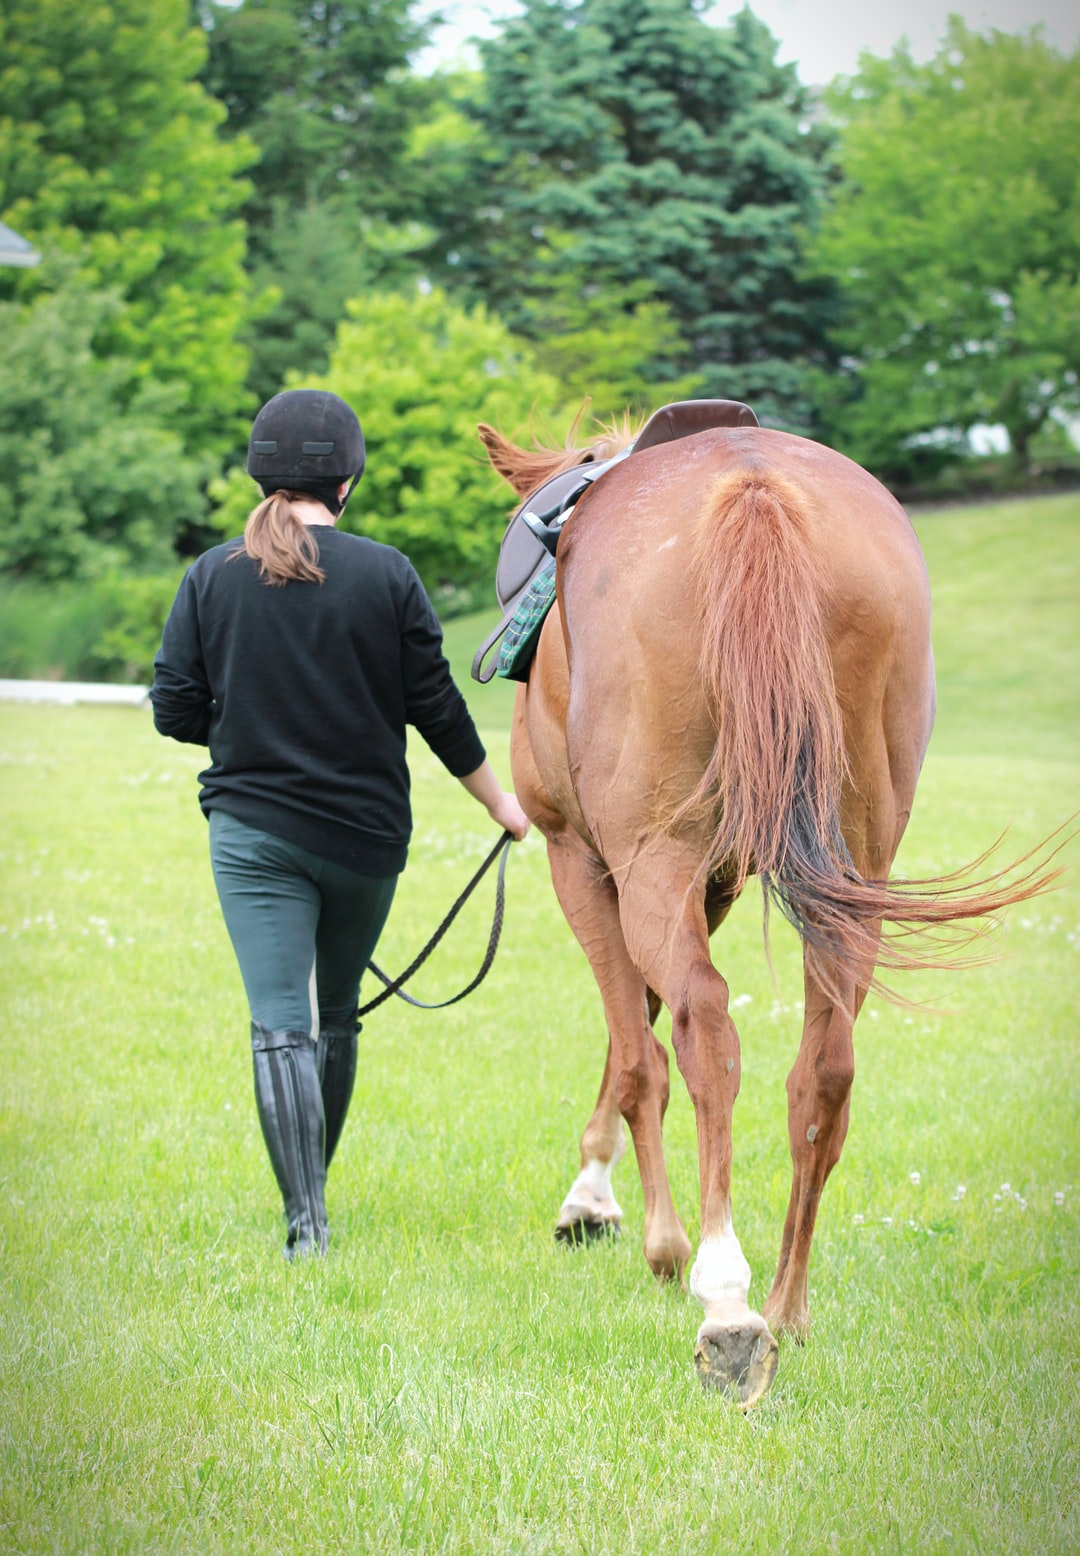 A girl walks next to a brown thoroughbred horse.